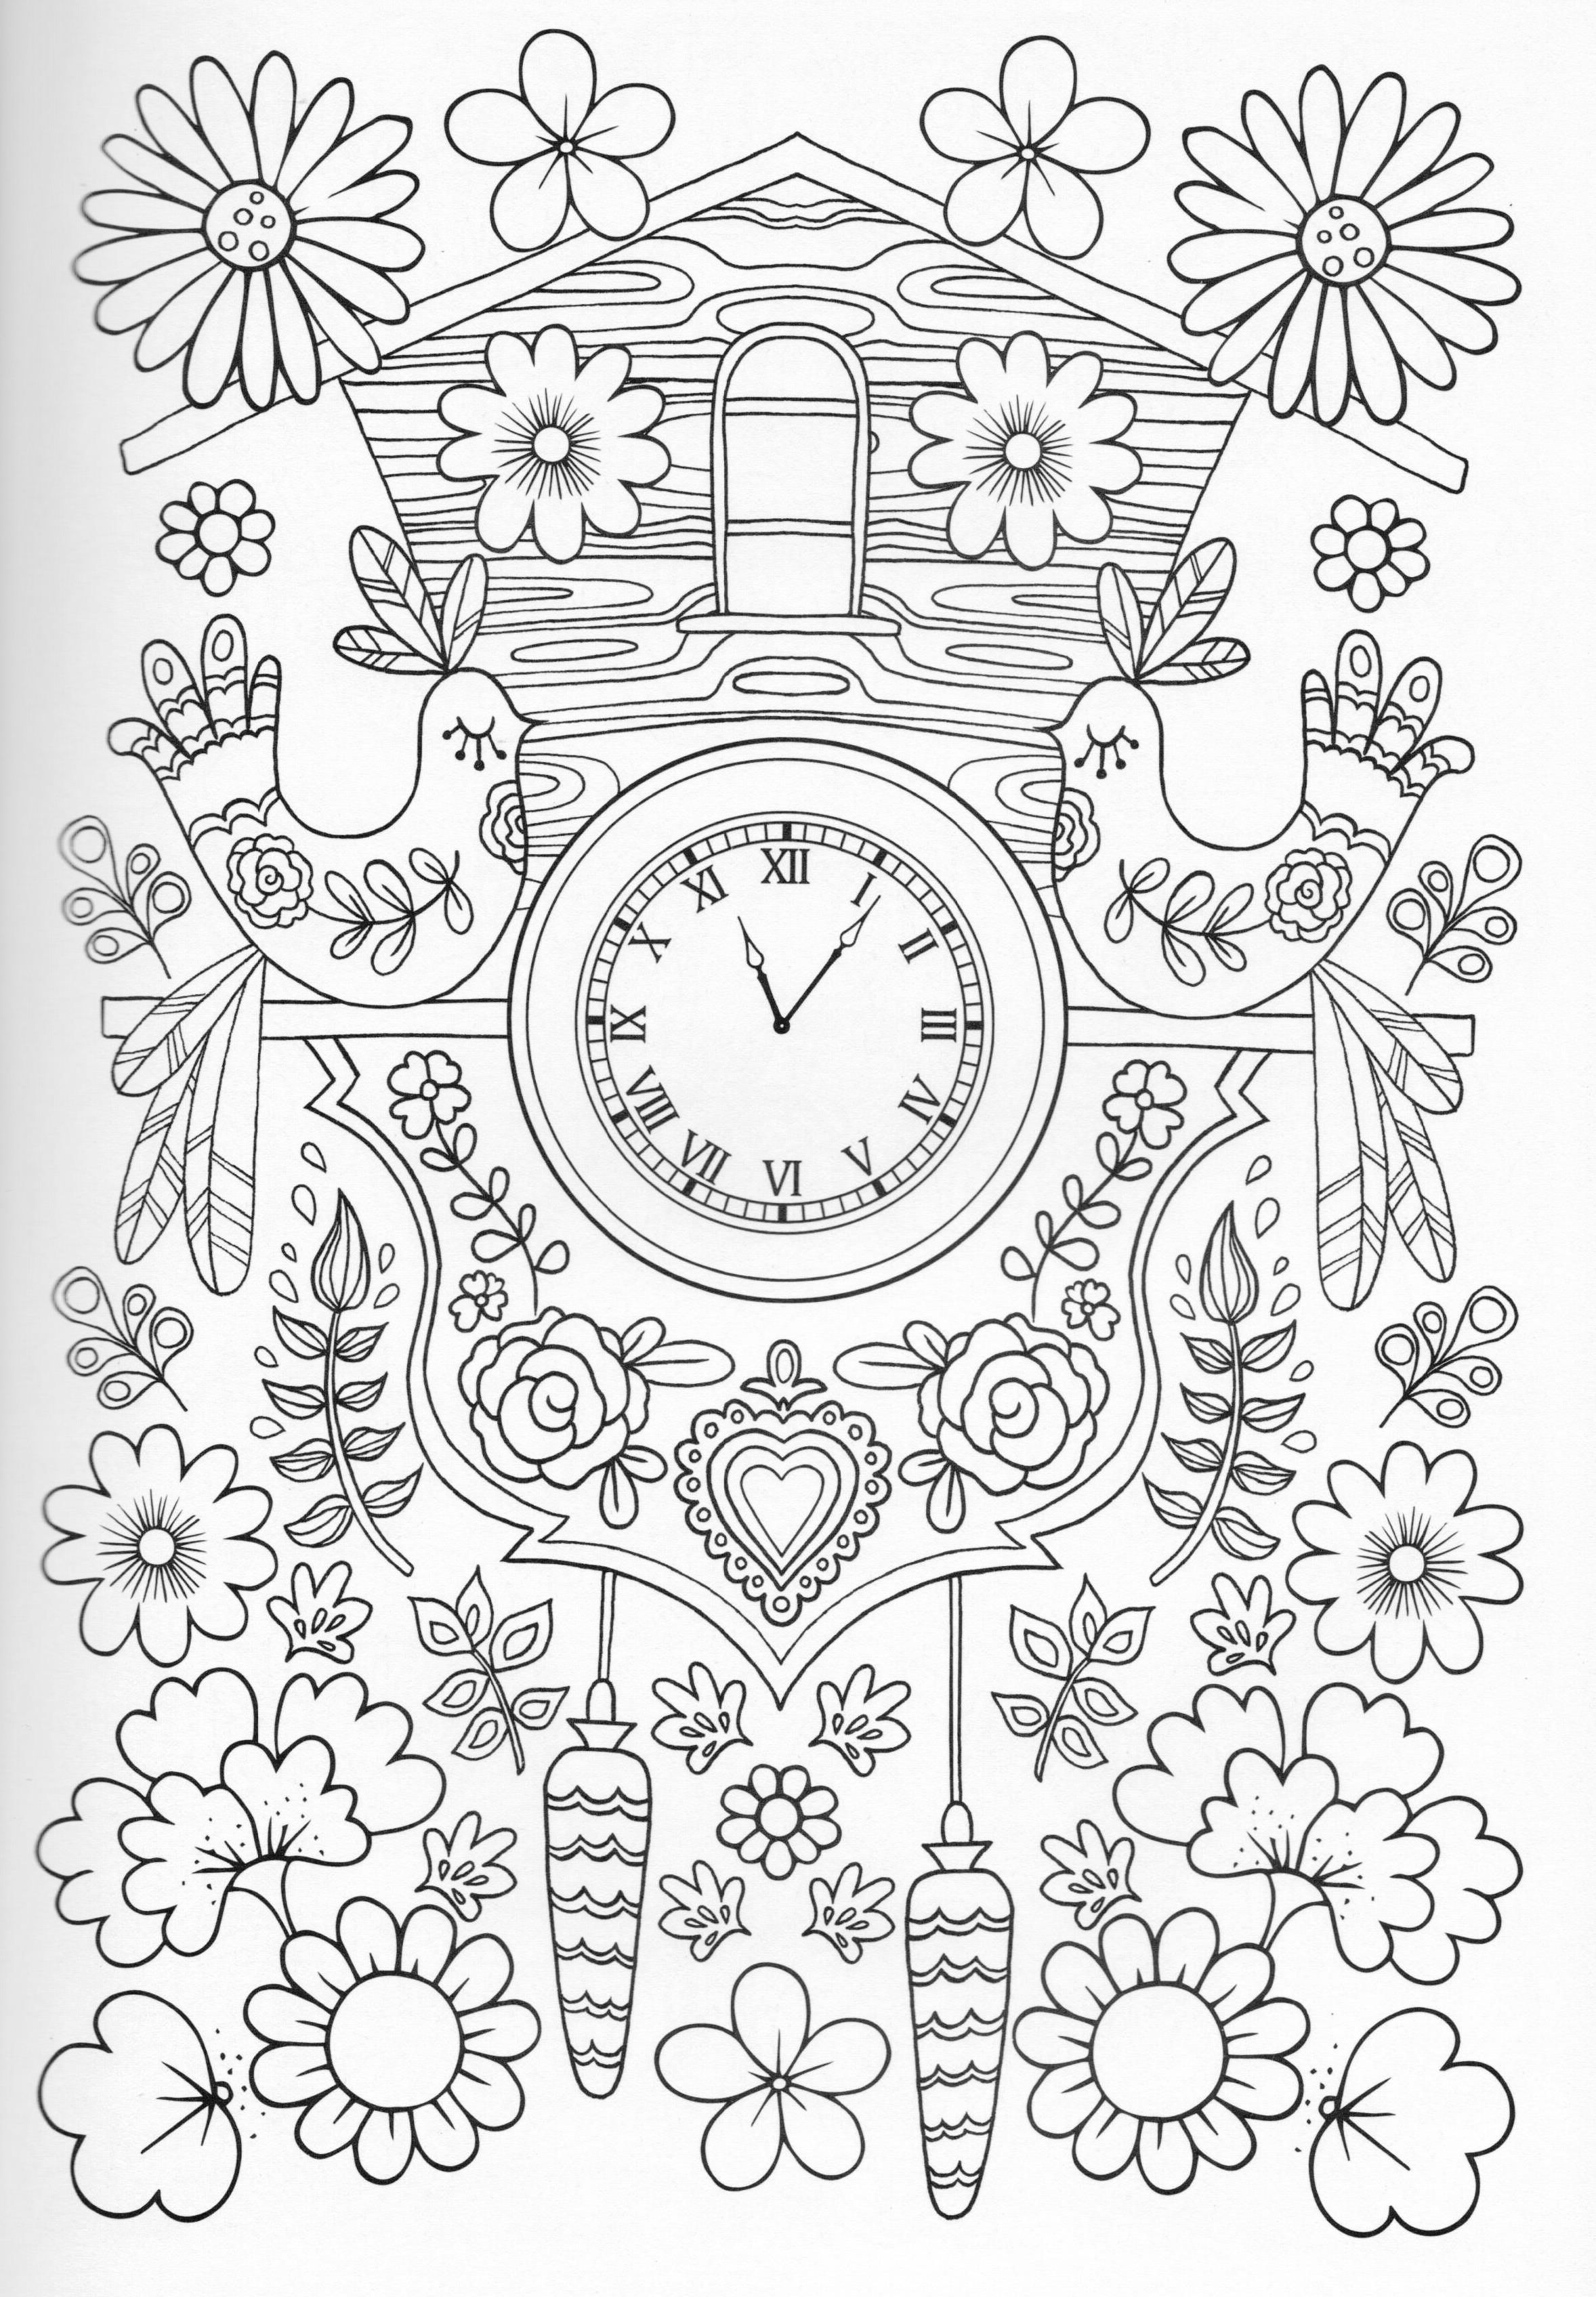 Adult coloring page | Embroidery (Nakış) - Redwork | Pinterest ...